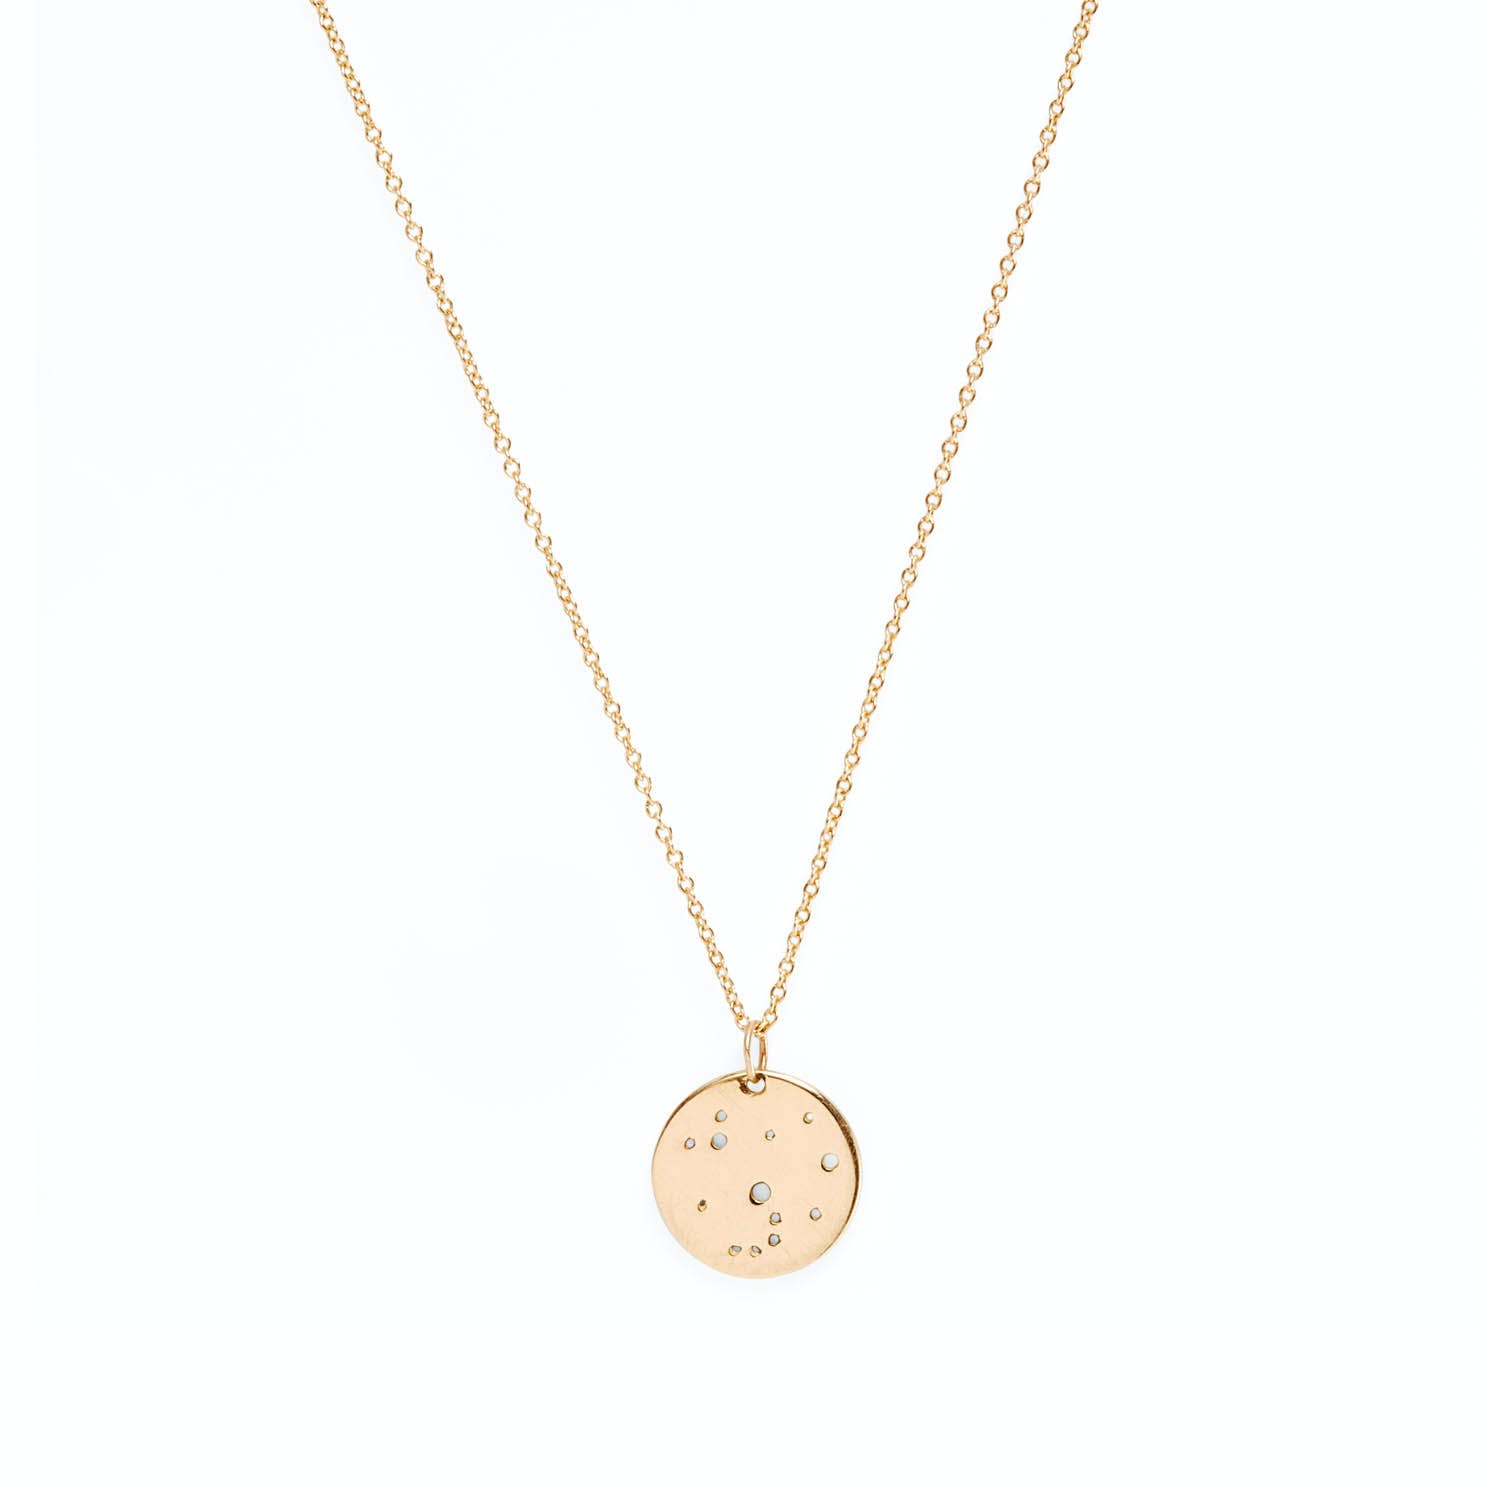 Aili Jewelry Gold Constellation Necklace